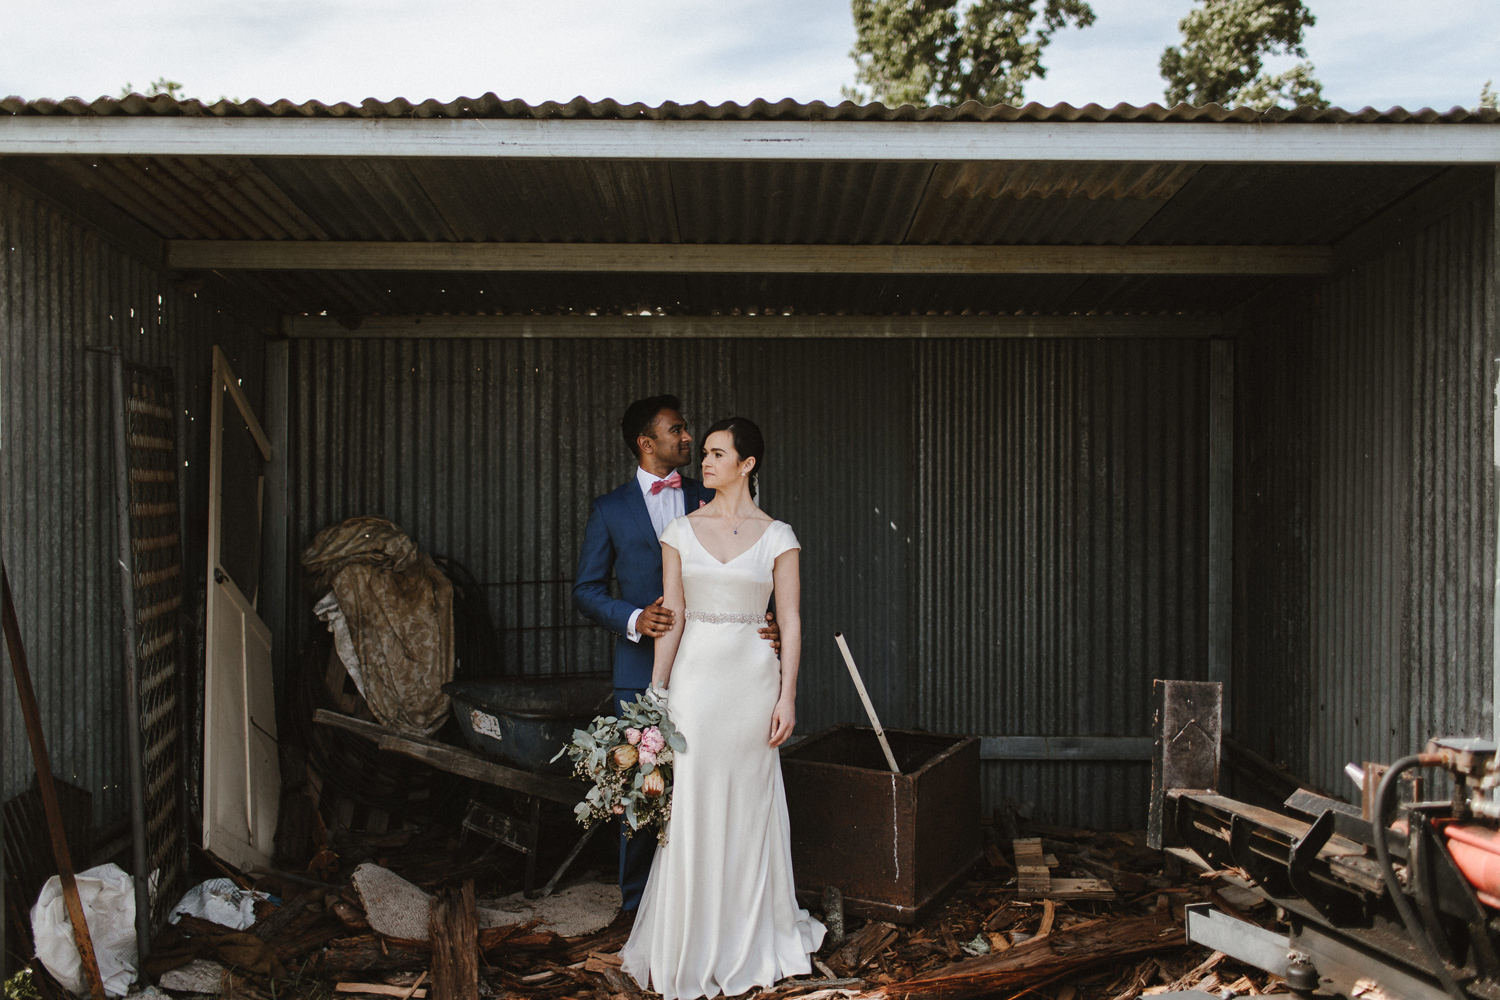 054-diy-australian-albury-farm-wedding-lisa-lasanka